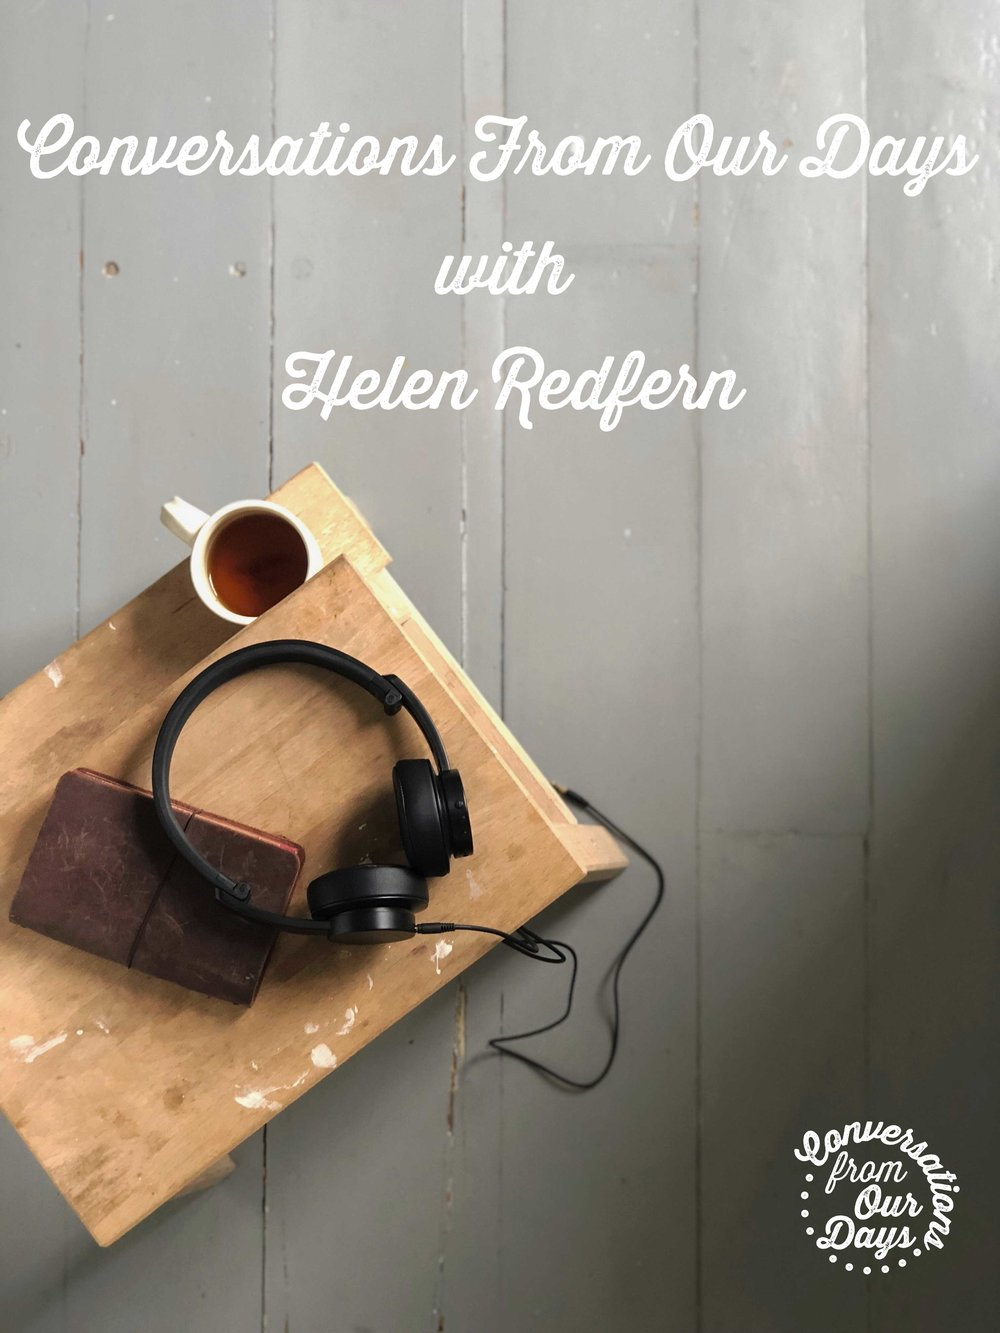 Conversations from our days with Helen Redfern